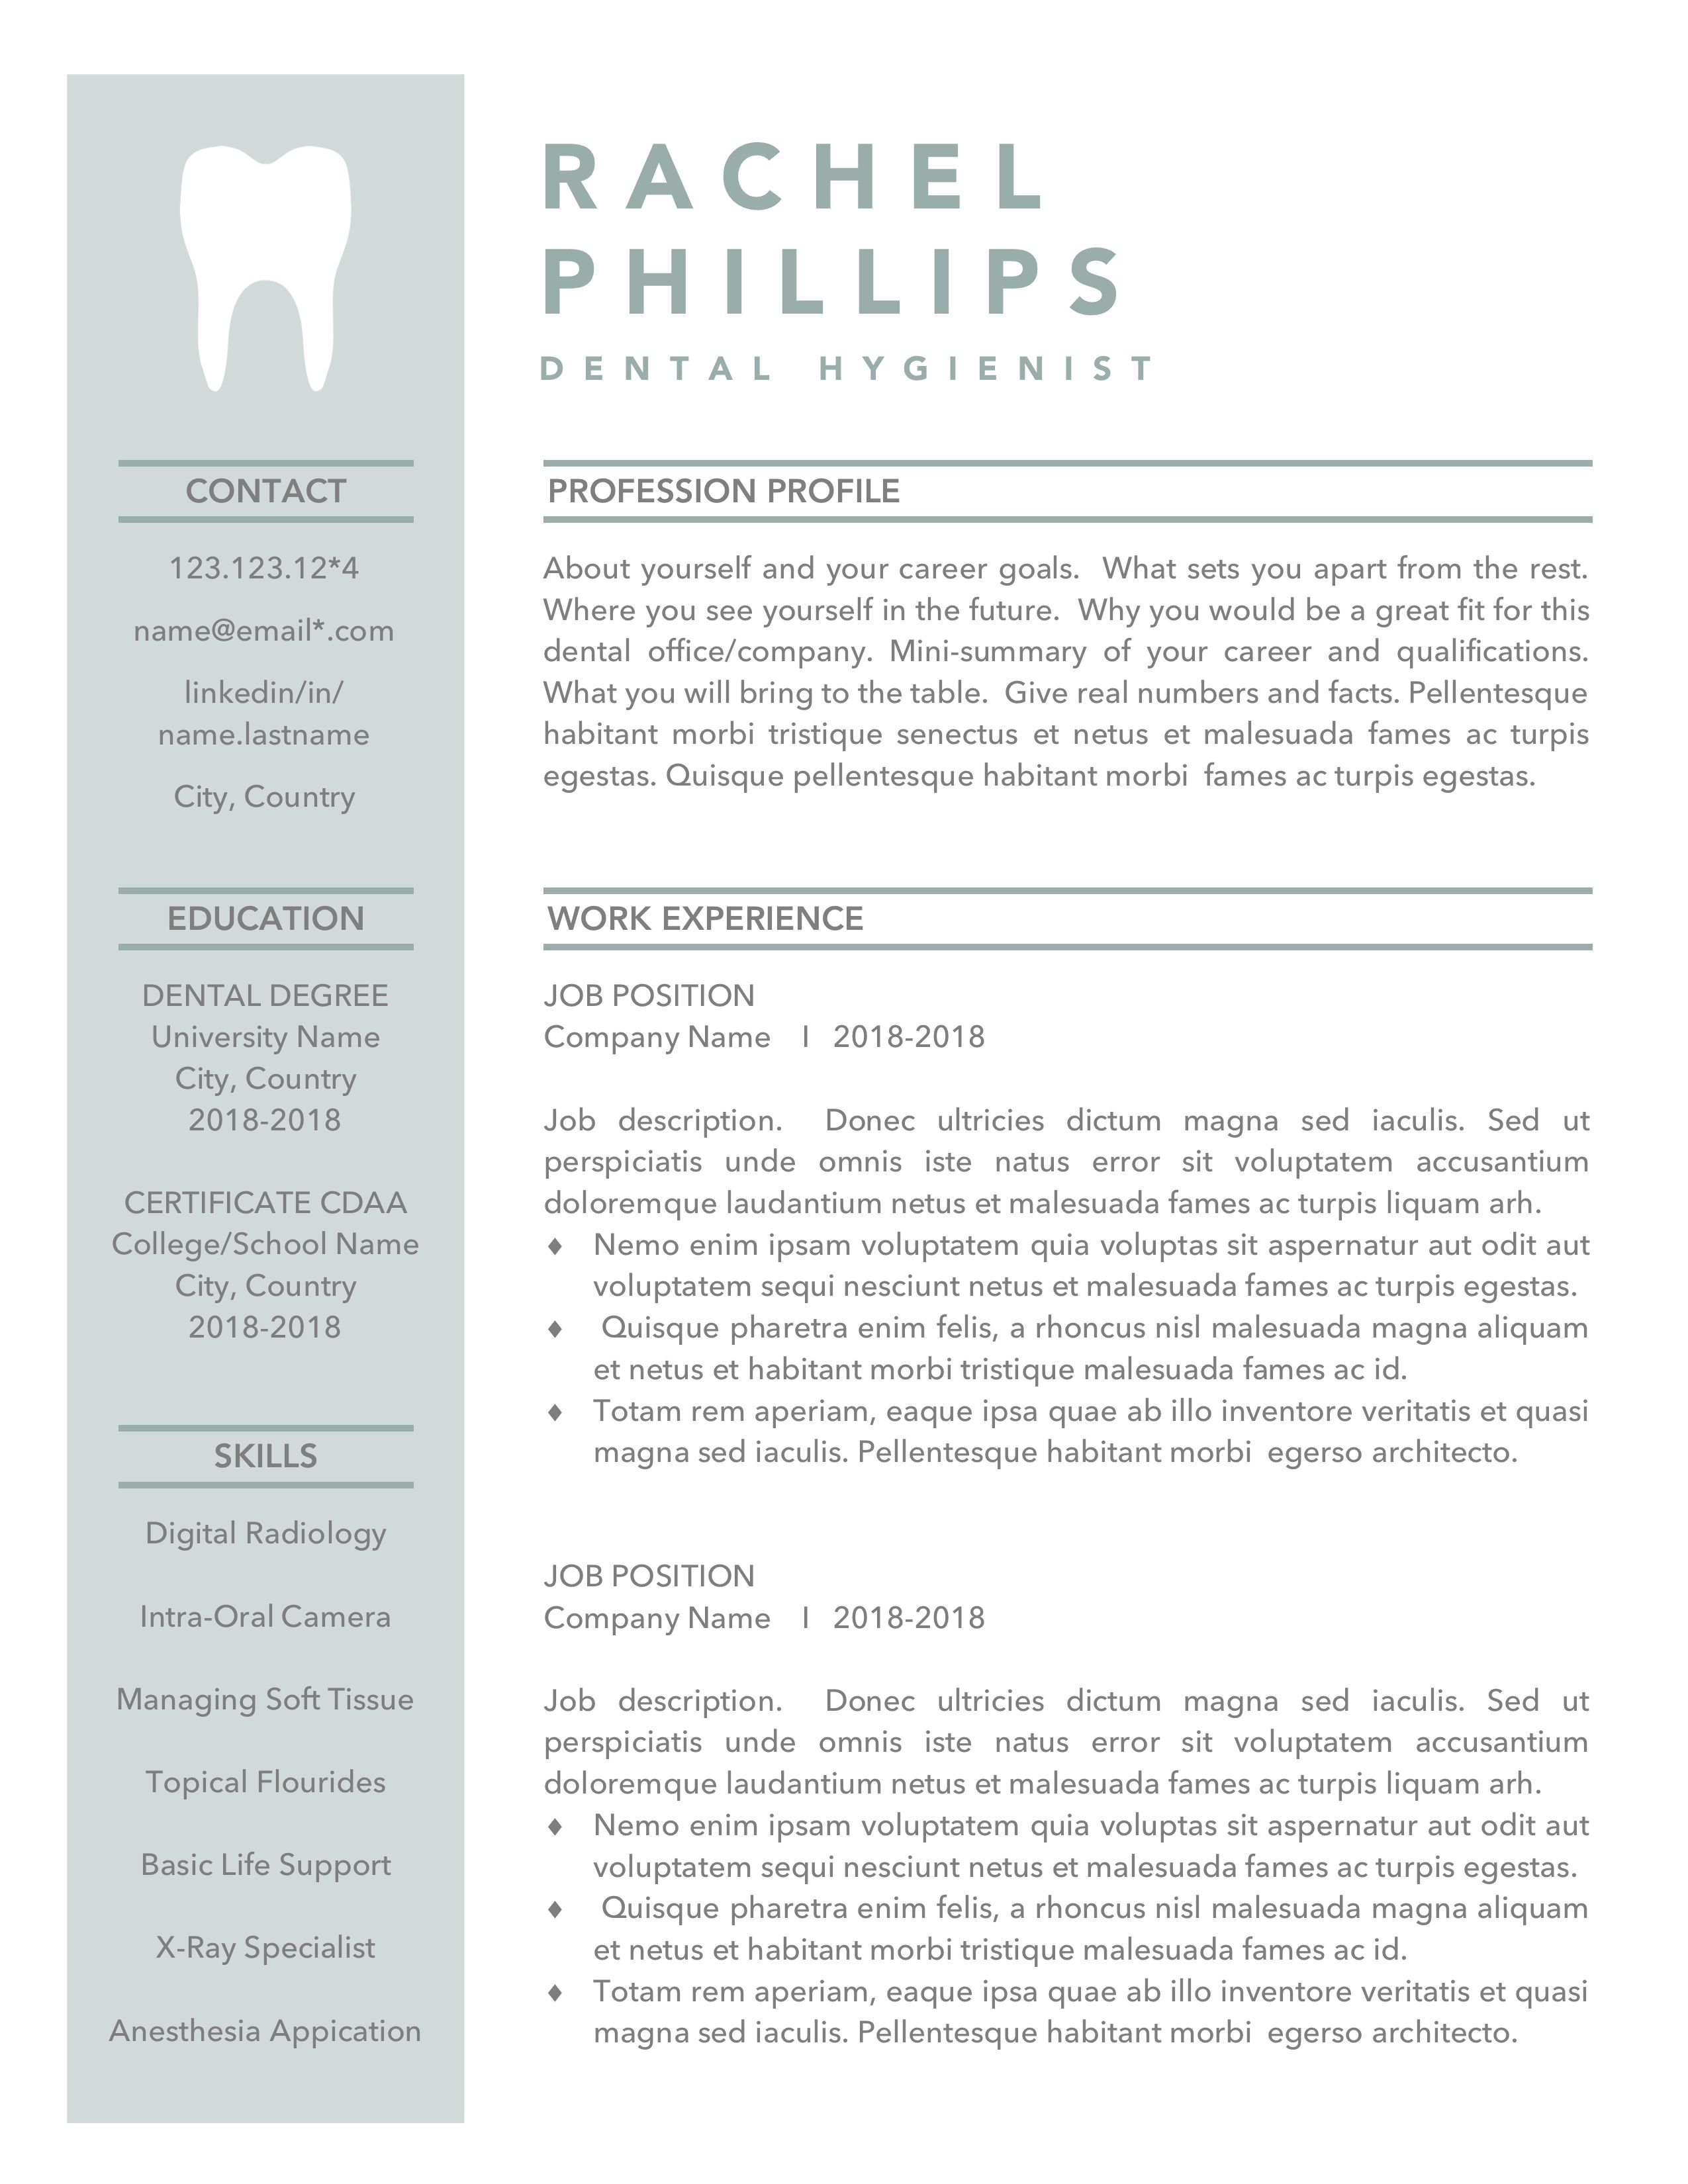 It's no secret that your resume shouldn't just be a list of old jobs—it needs to be visually appealing as well, within reason. Dental Resume Template Hygienist Resume Bundle Dentist Resumes Dental Assistant Cv Templates Dental Graduate Student Resume Dentist Resume Dental Hygiene Resume Dental Hygienist Resume